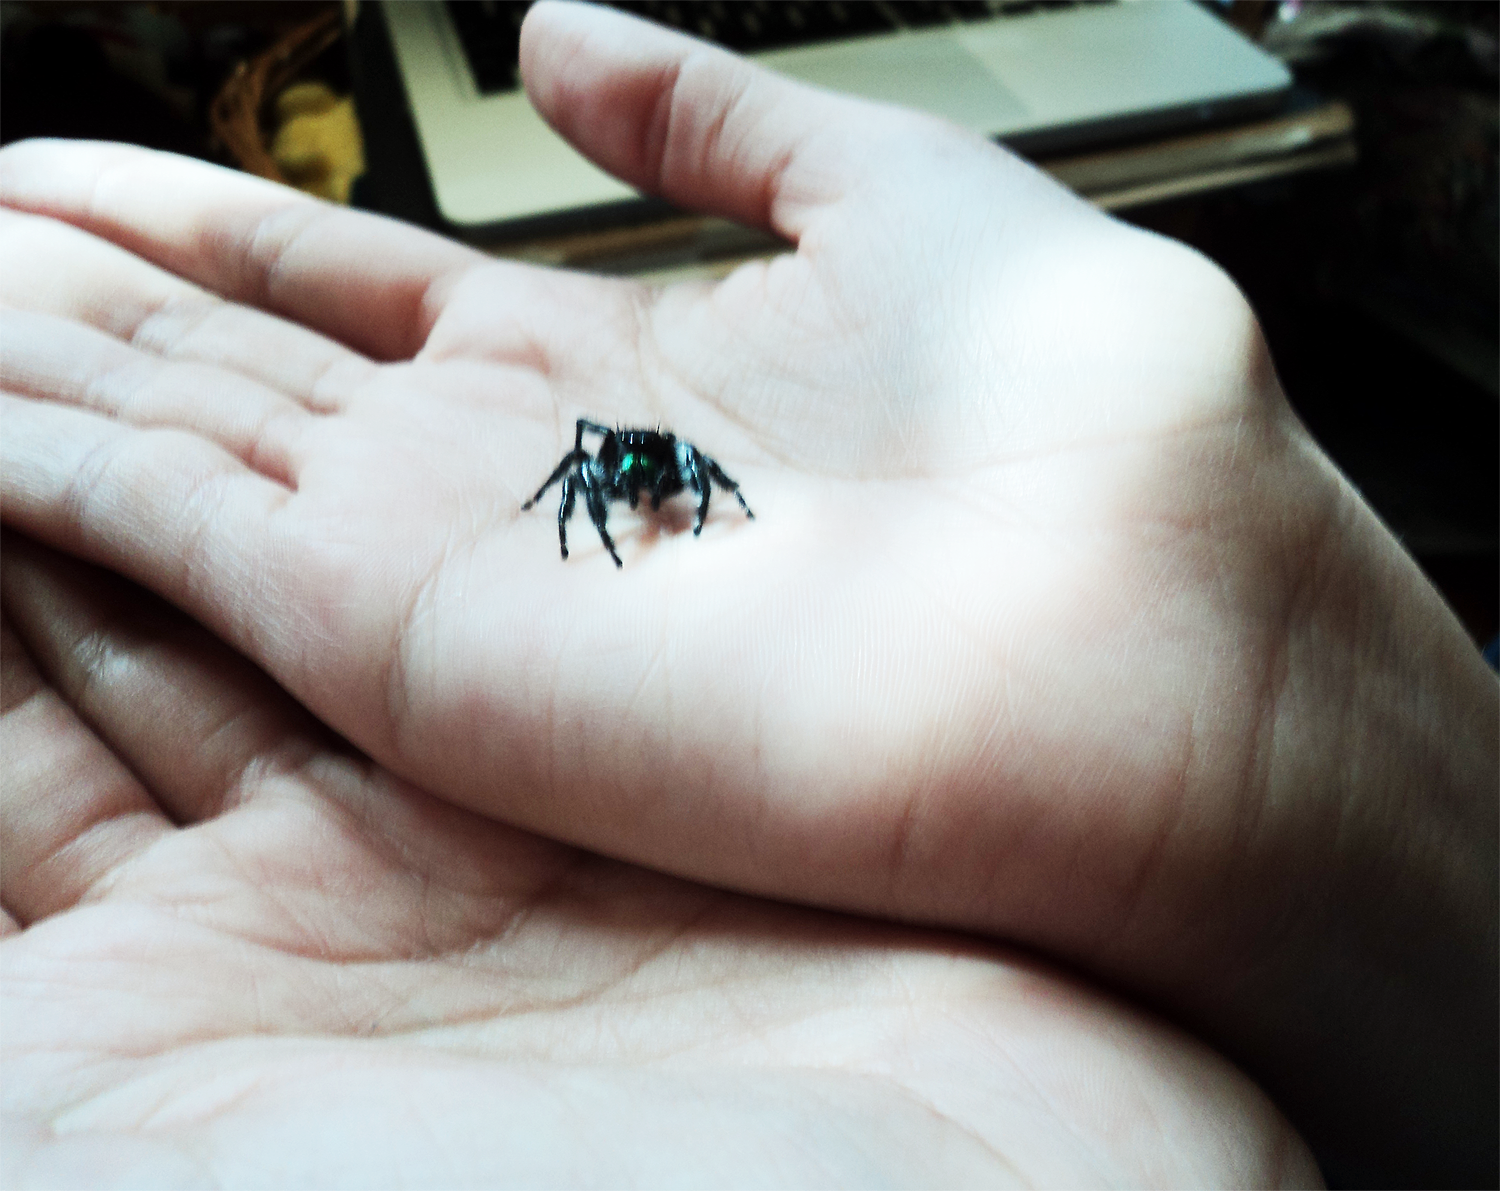 Sister's Bold Jumping Spider by The-Clockwork-Crow on DeviantArt